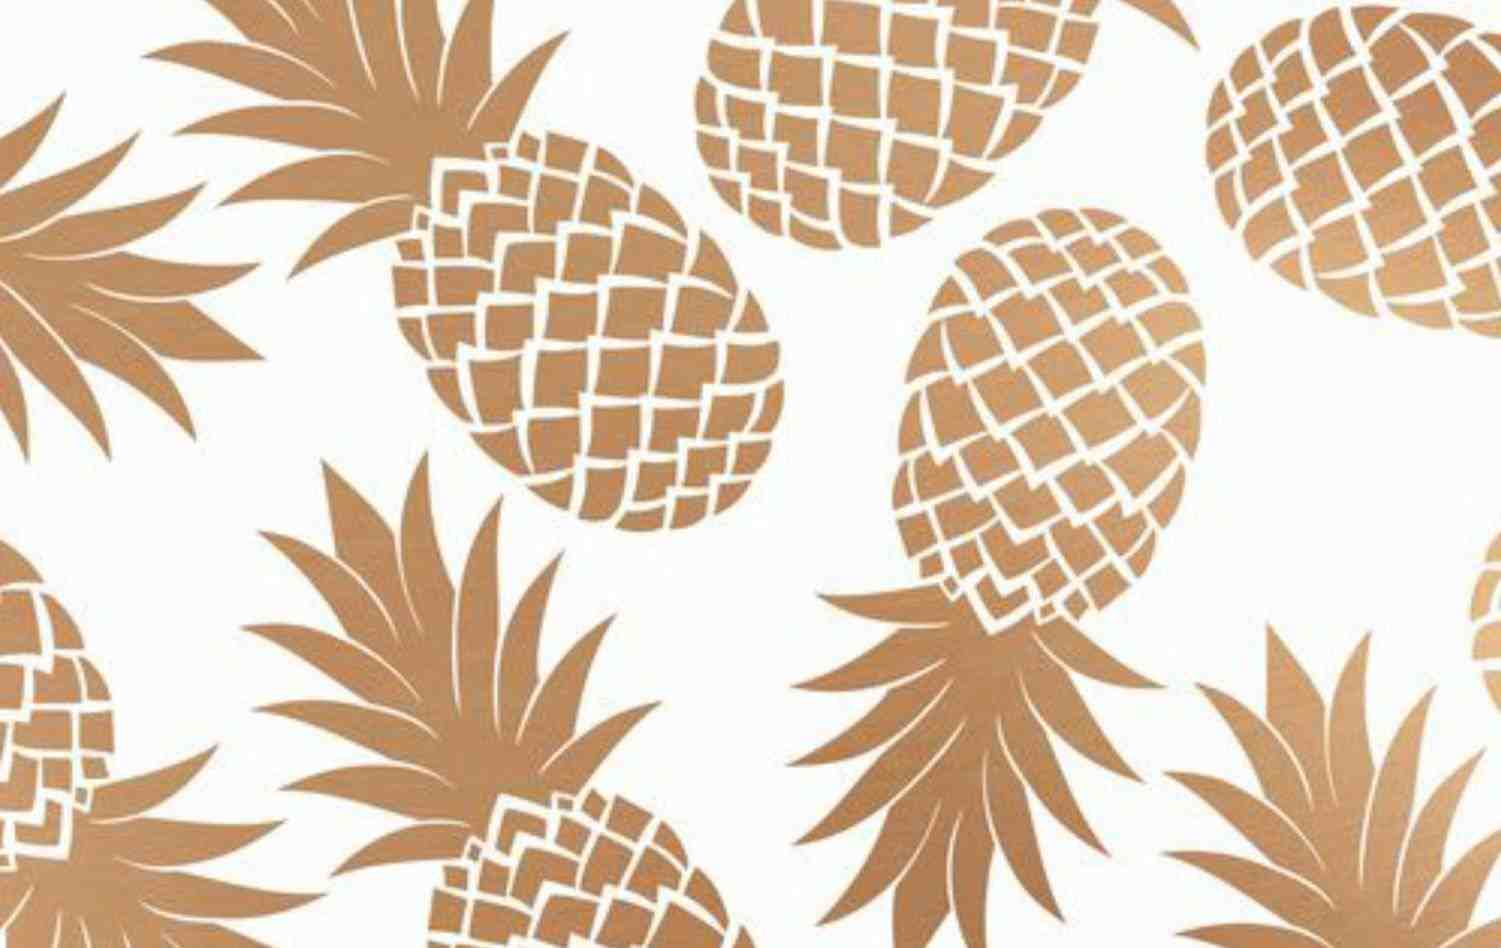 Pineapple Aesthetic Wallpapers Wallpaper Cave